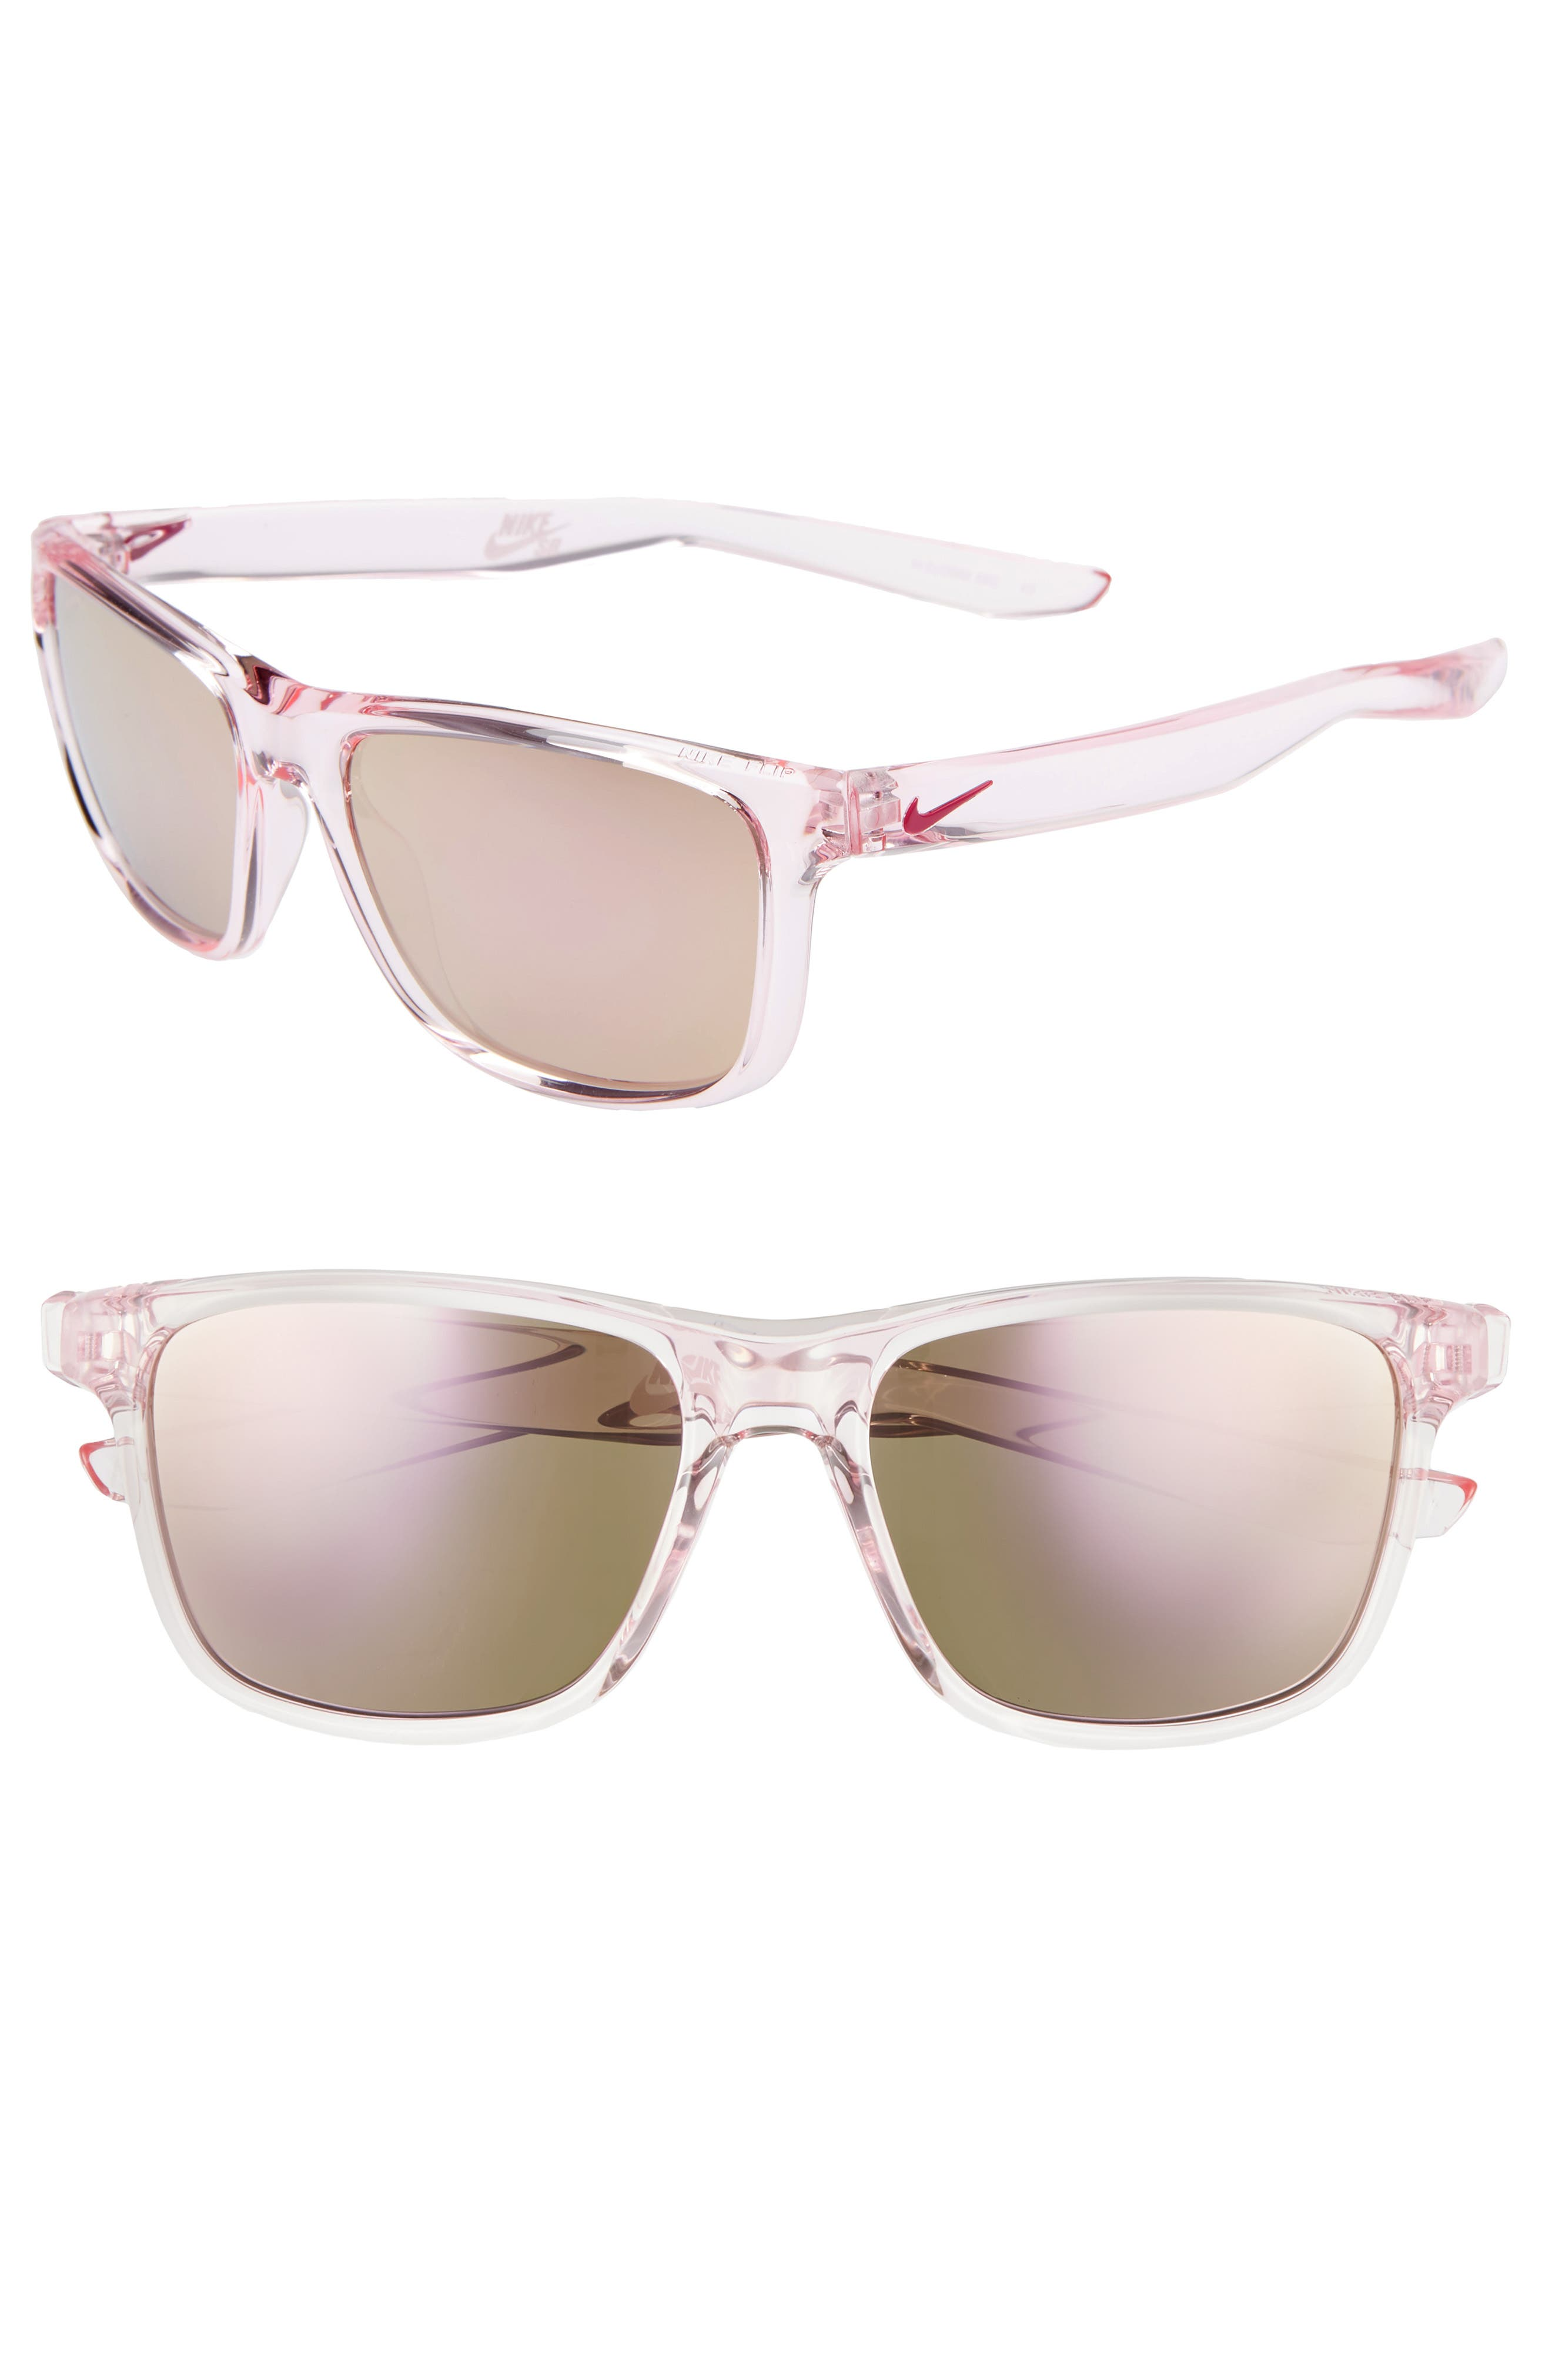 Nike Flip 5m Mirrored Sunglasses - Pink Foam/ Pink